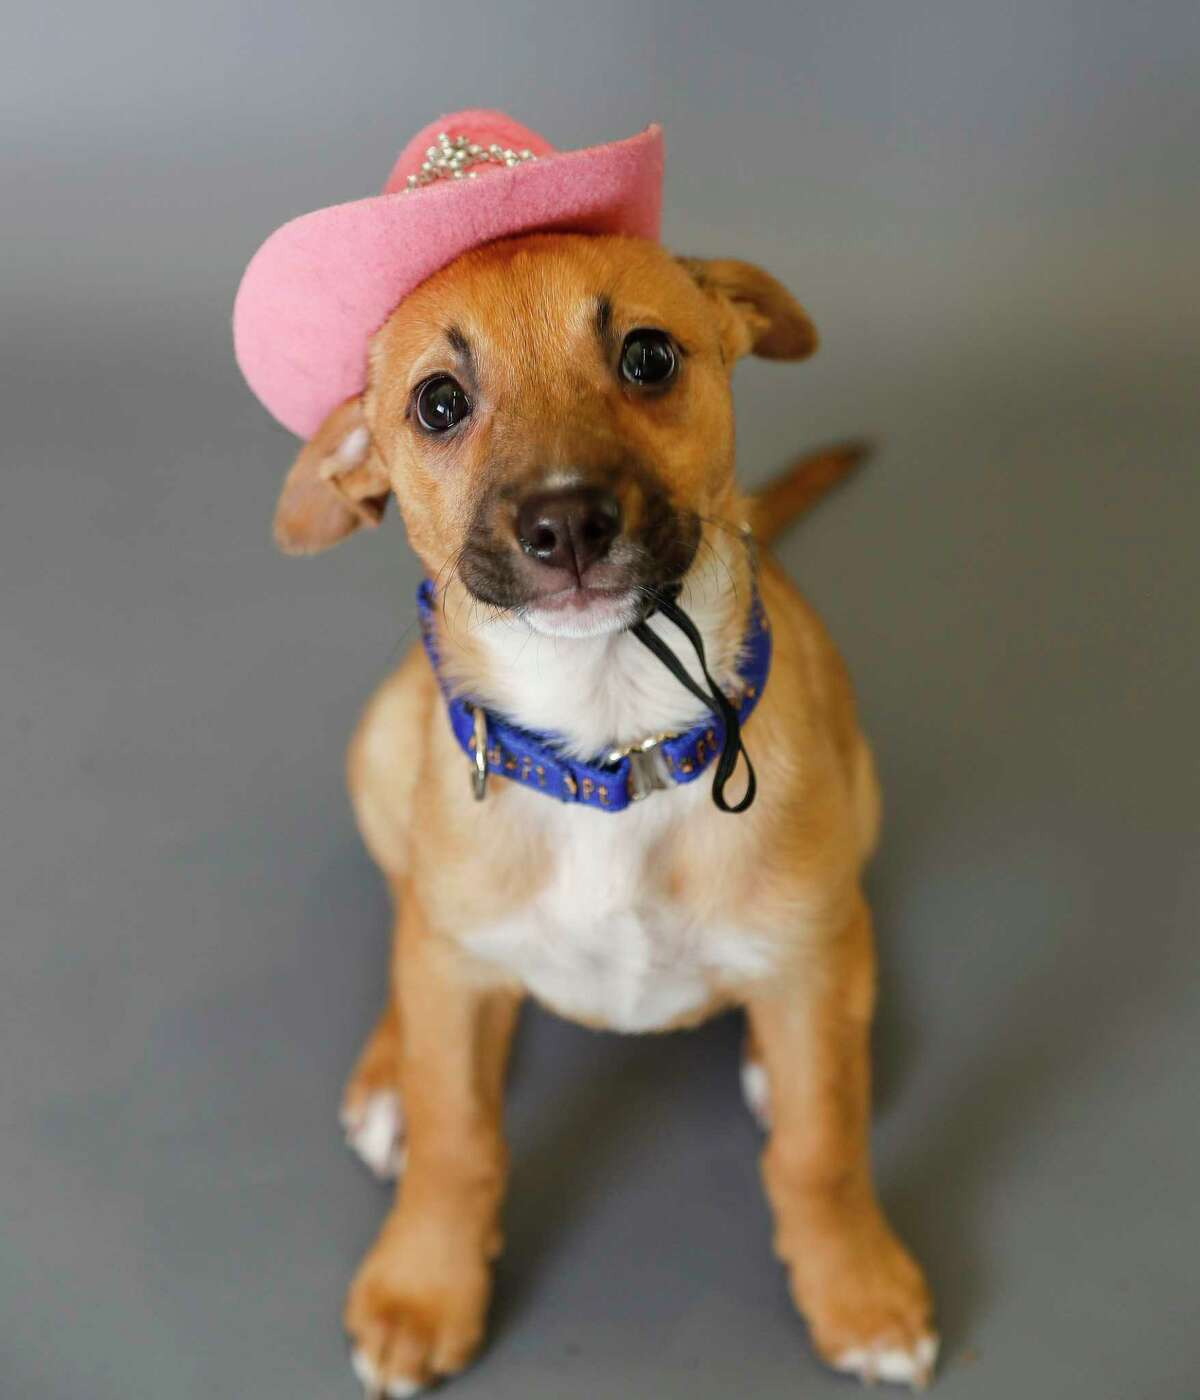 Mandy (A1676054) is a 11-week-old, female, Black Mouth Cur Mix mix available for adoption from the BARC Animal Shelter, in Houston,Tuesday, March 10, 2020. Mandy was found as a stray in a landfill and at 5 weeks old, and very sick with sarcoptic mange, upper respiratory infections, eye infections, entropian, and ringworm! And now because of an amazing foster mom, she has recovered and ready for a new family. In addition to being a sweetheart, she also already knows the command to